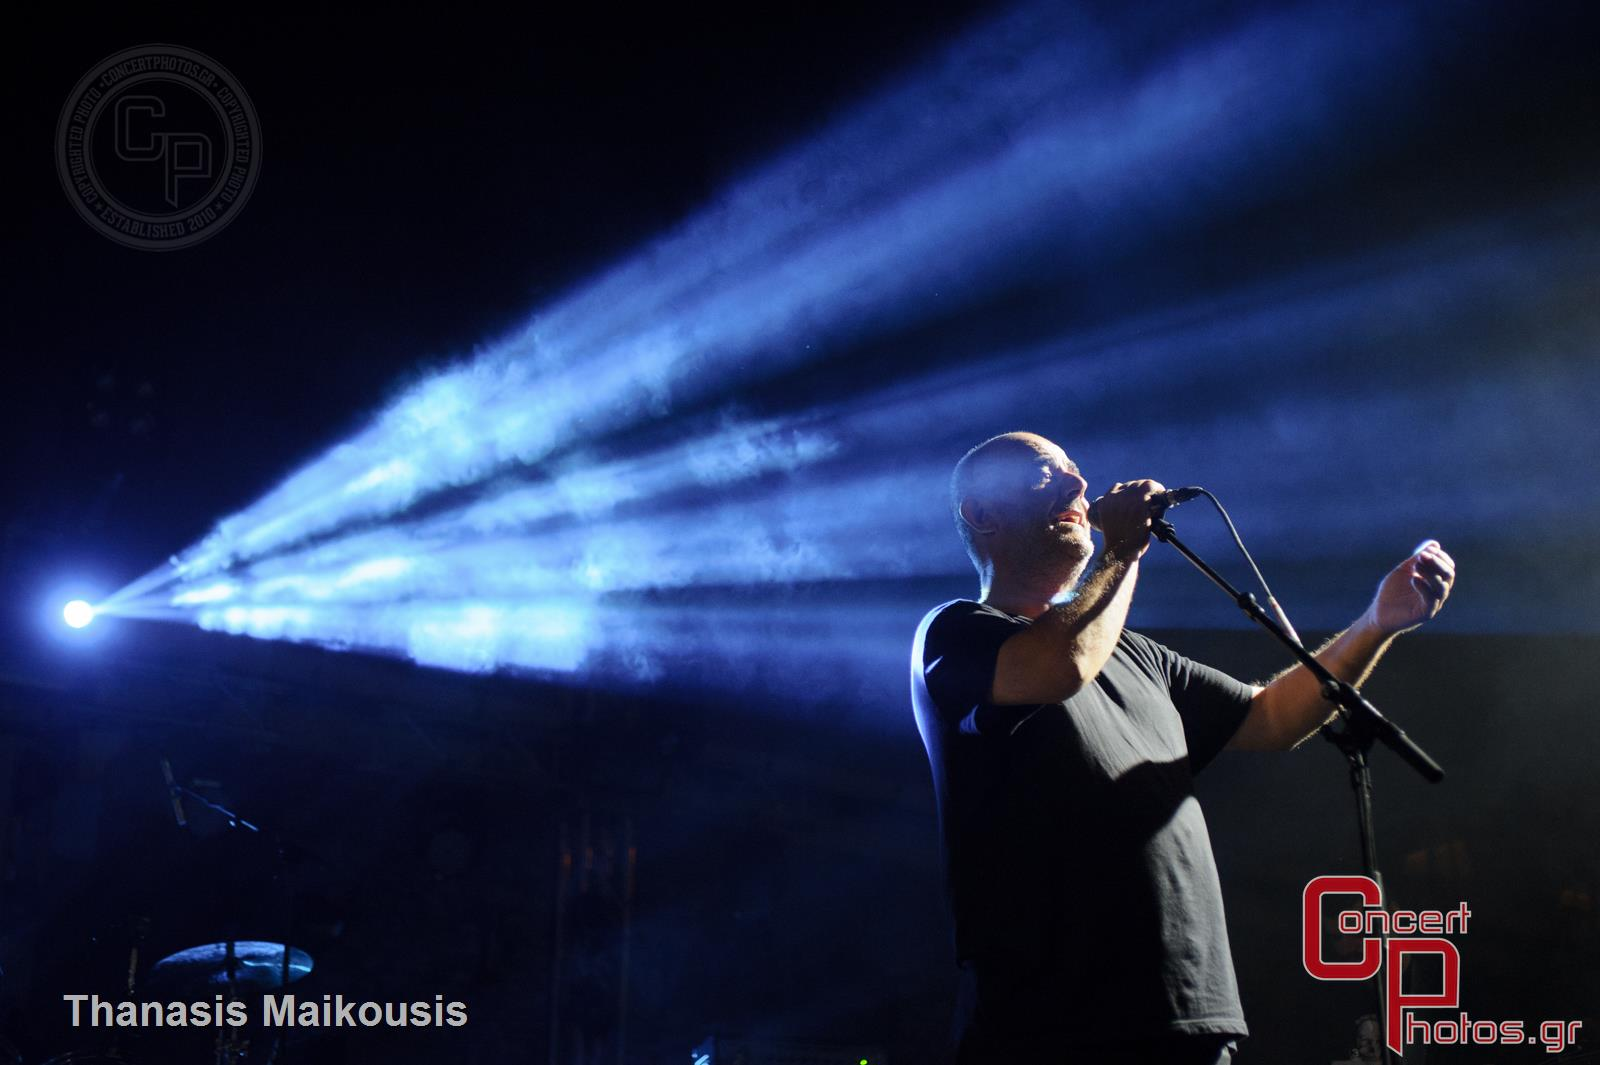 VIC-VIC-Technopolis photographer: Thanasis Maikousis - concertphotos_20150925_21_24_18